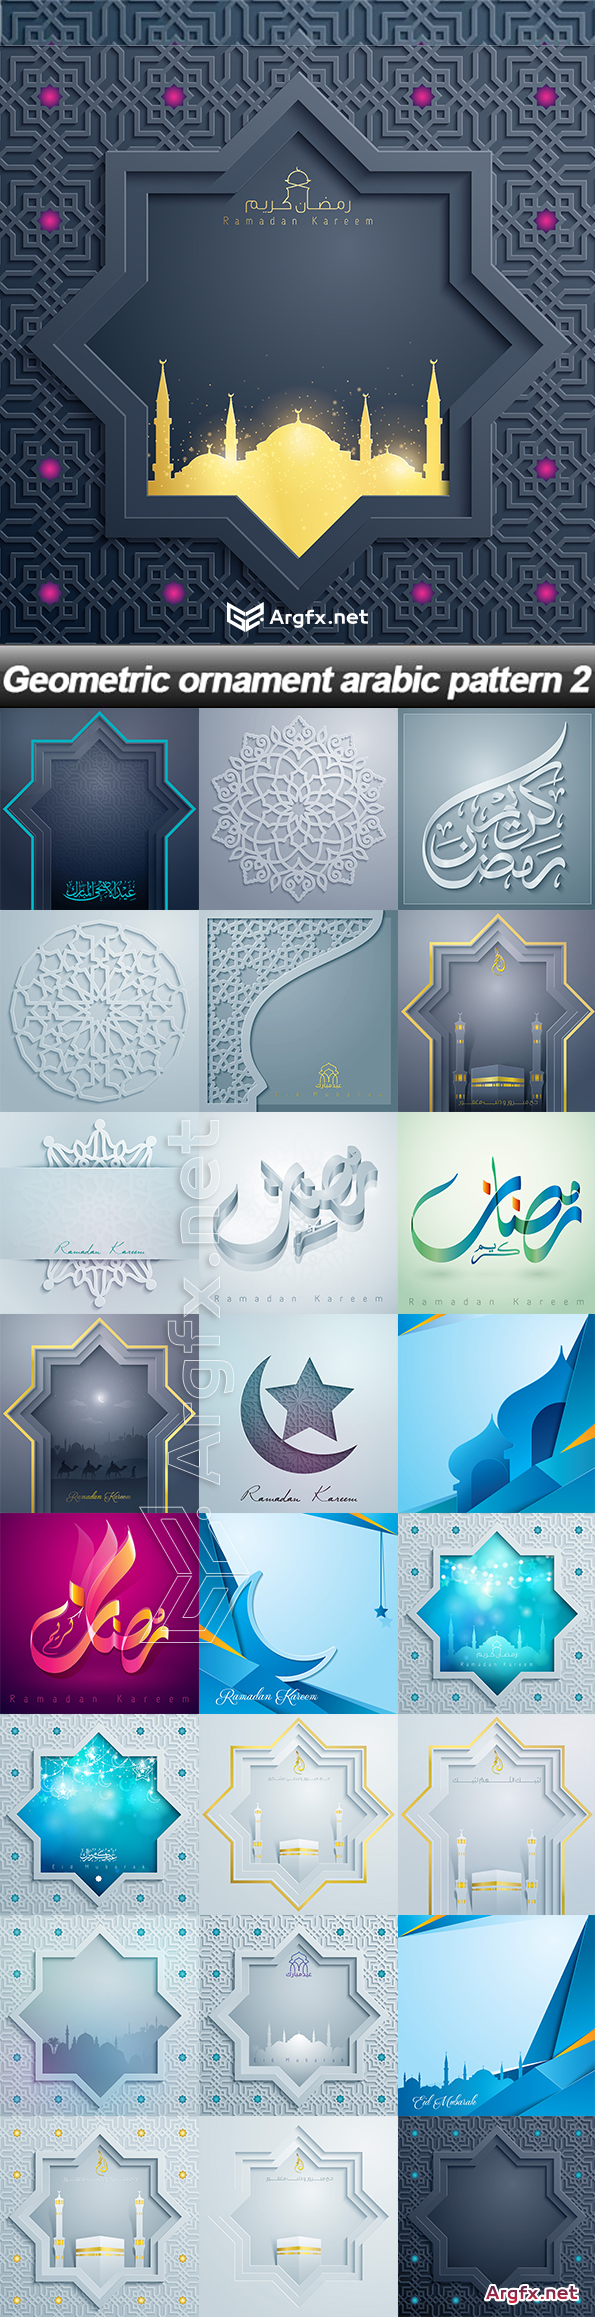 Geometric ornament arabic pattern 2 - 25 EPS